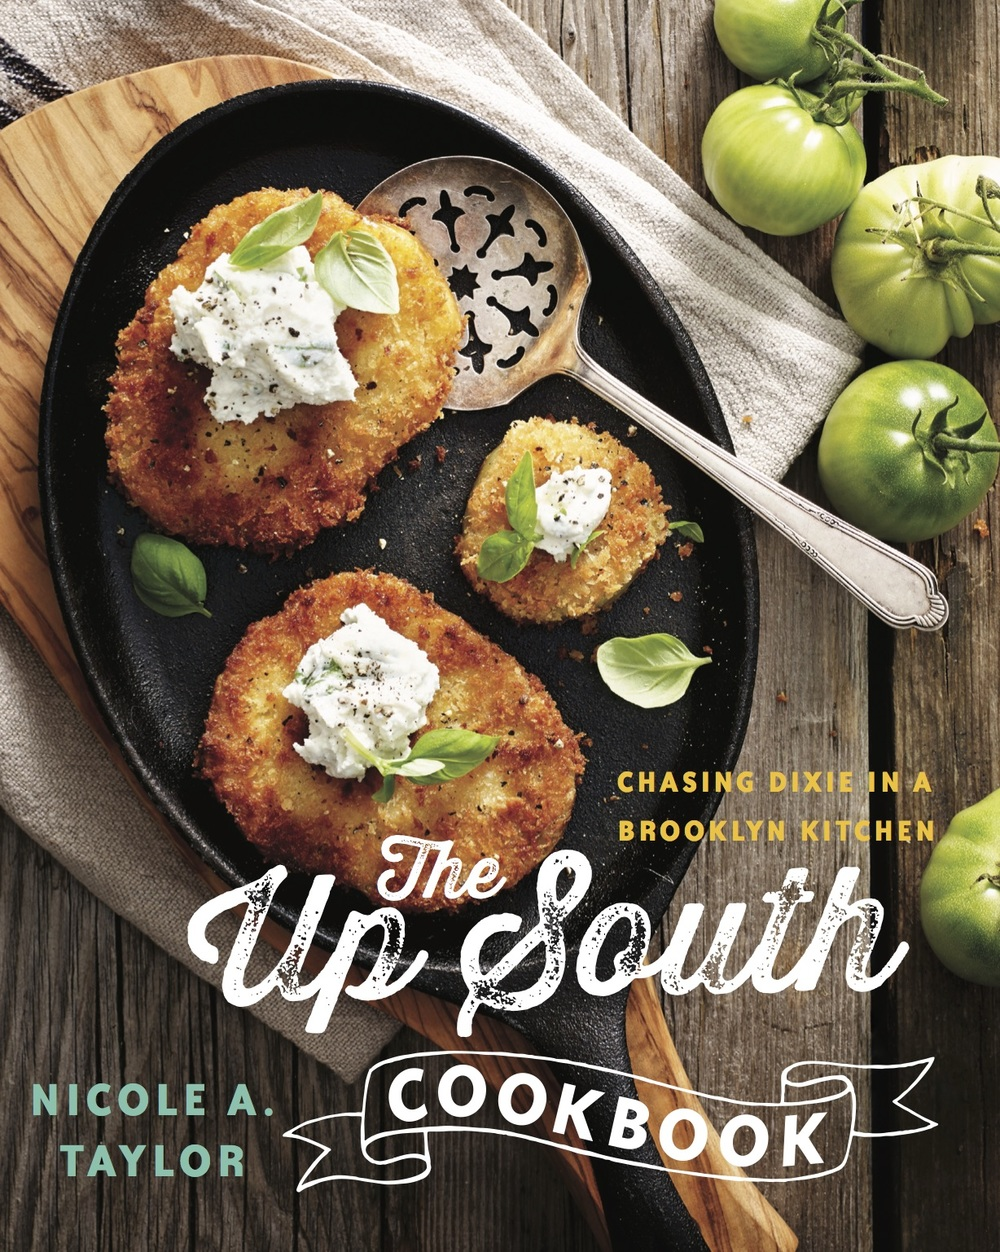 Nicole's First Cookbook: The Up South Cookbook. W.W. Norton & Company.